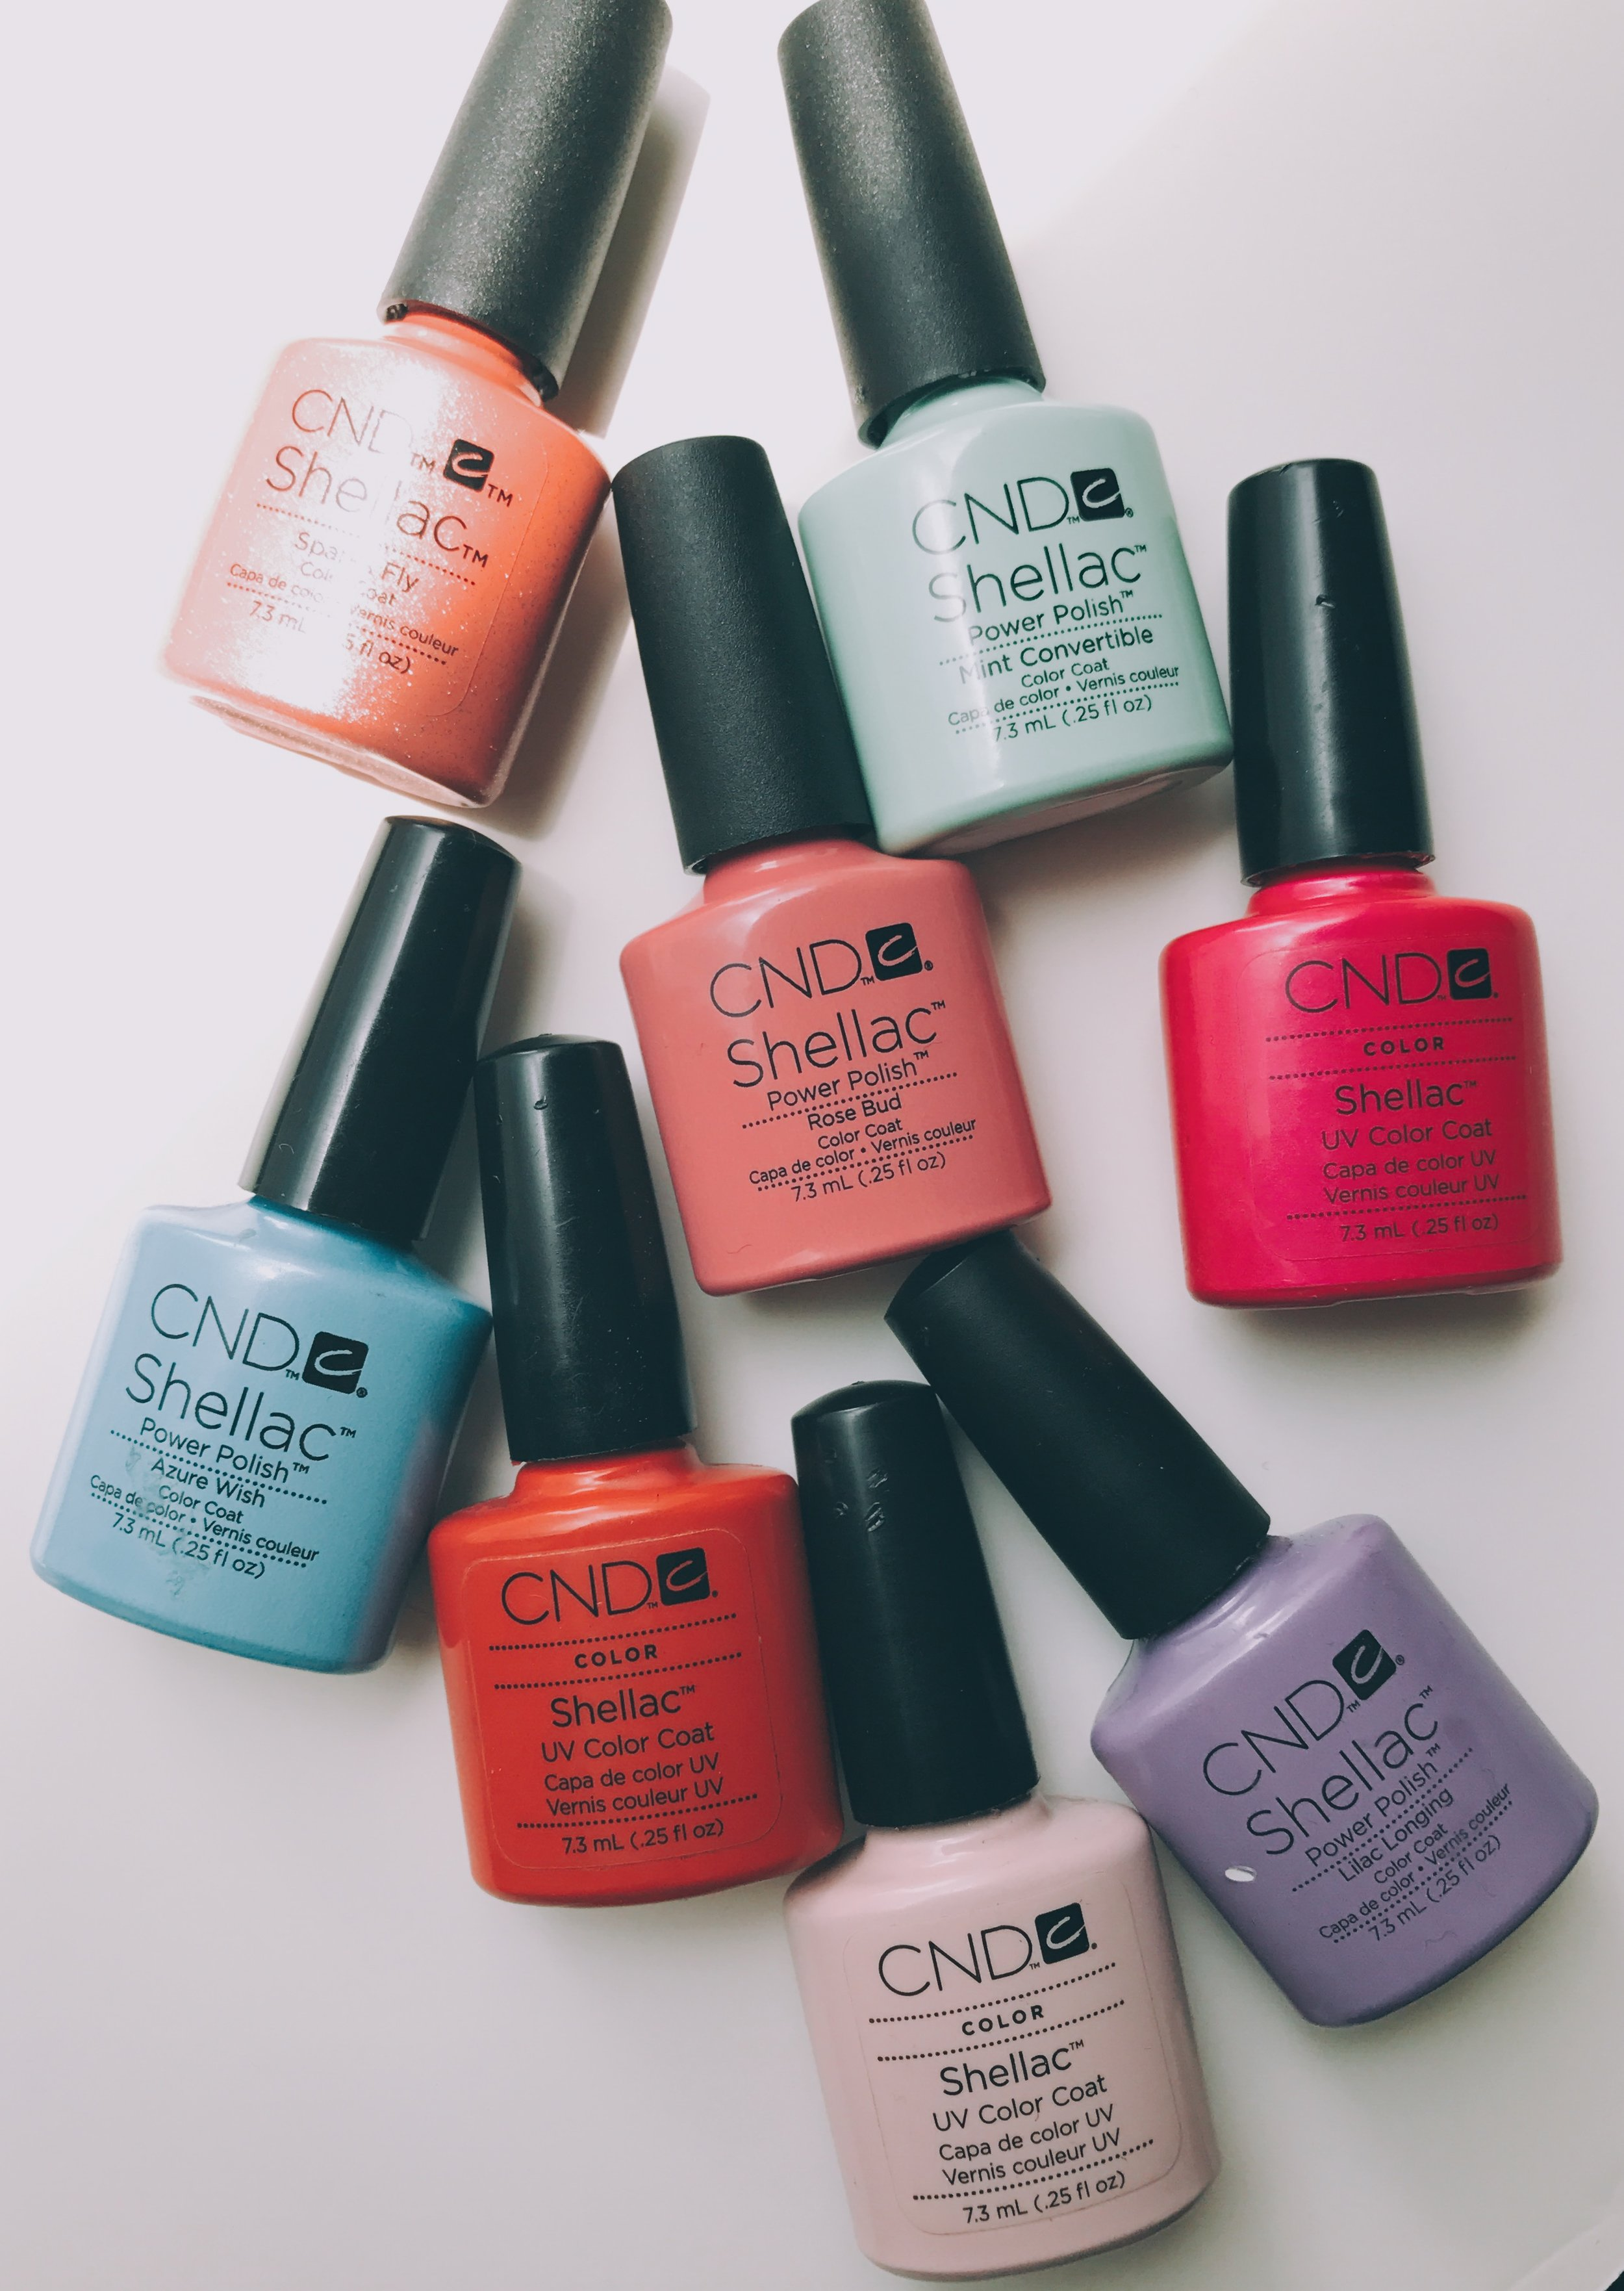 A few of our favorite summer shades at The QG Spa